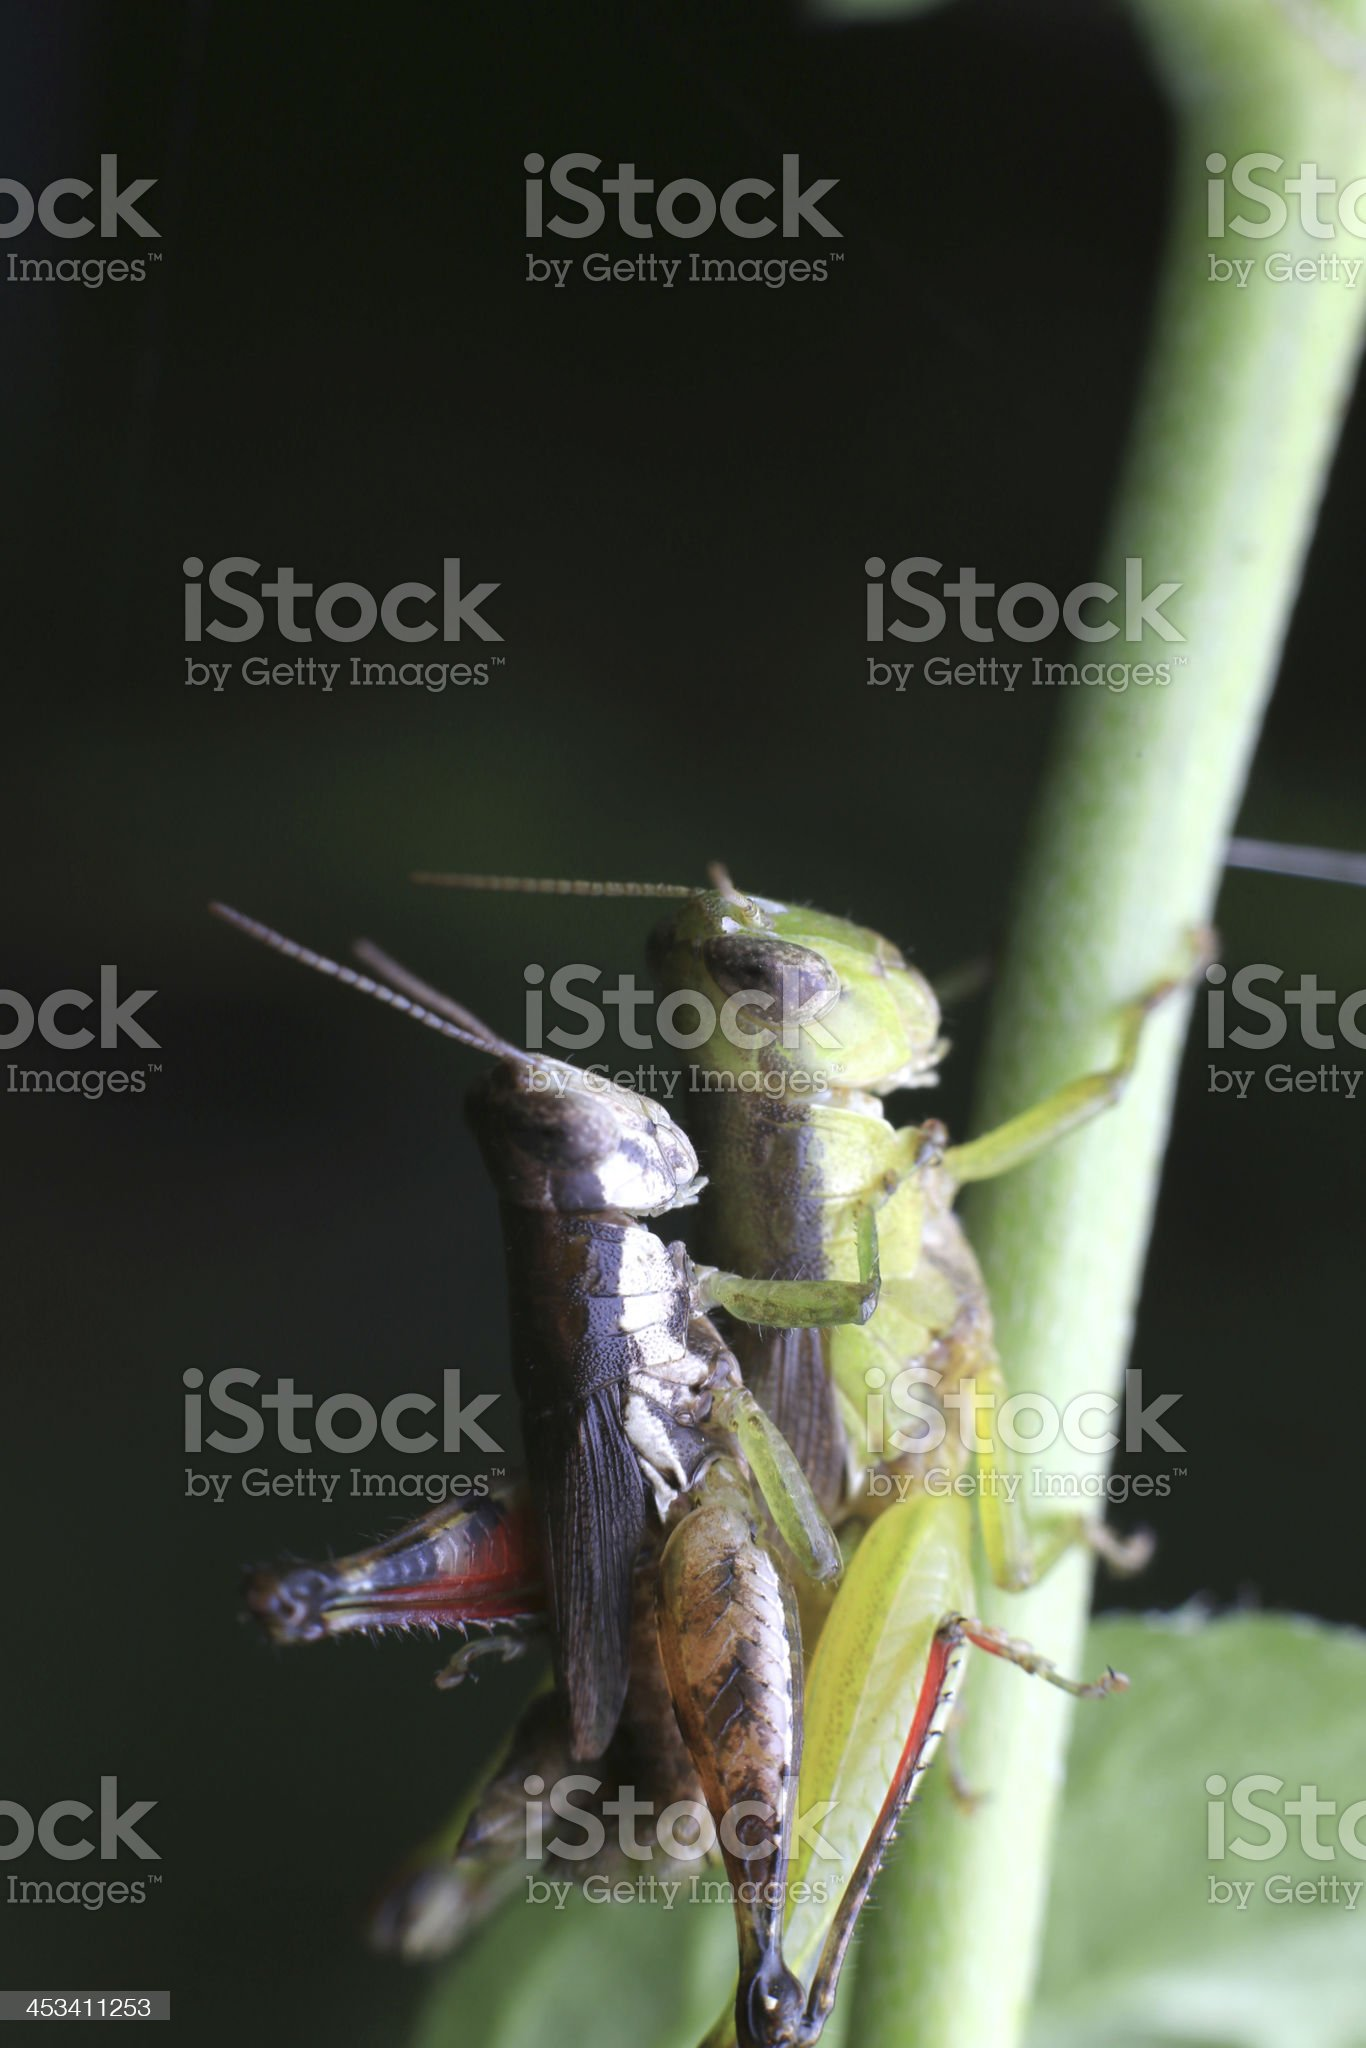 Mating locust under plant royalty-free stock photo